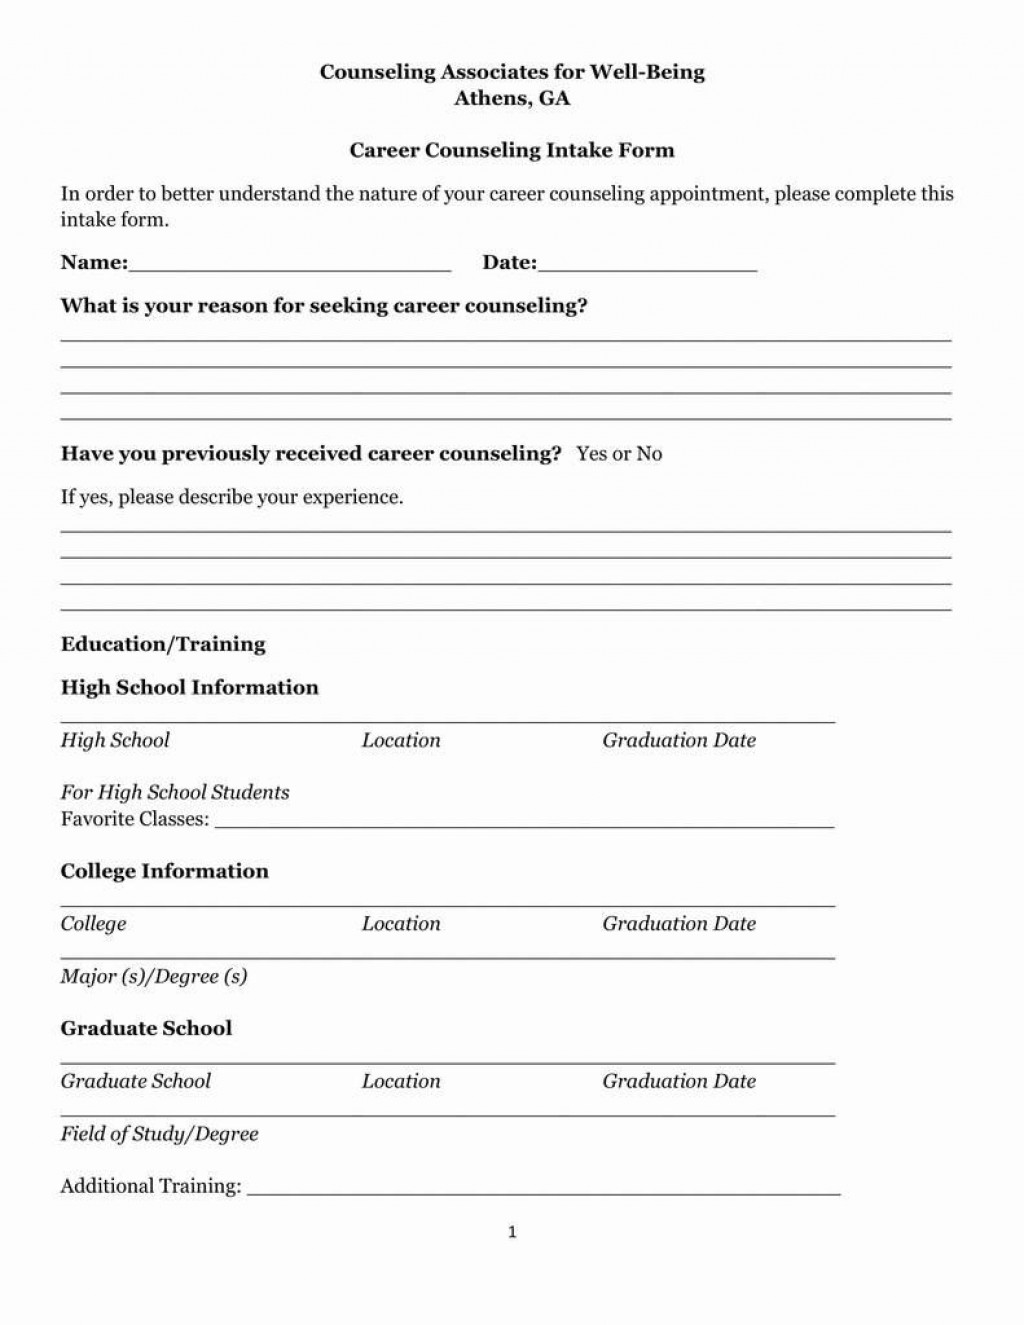 008 Rare Counseling Intake Form Template High Resolution  Templates Therapy Massage FreeLarge